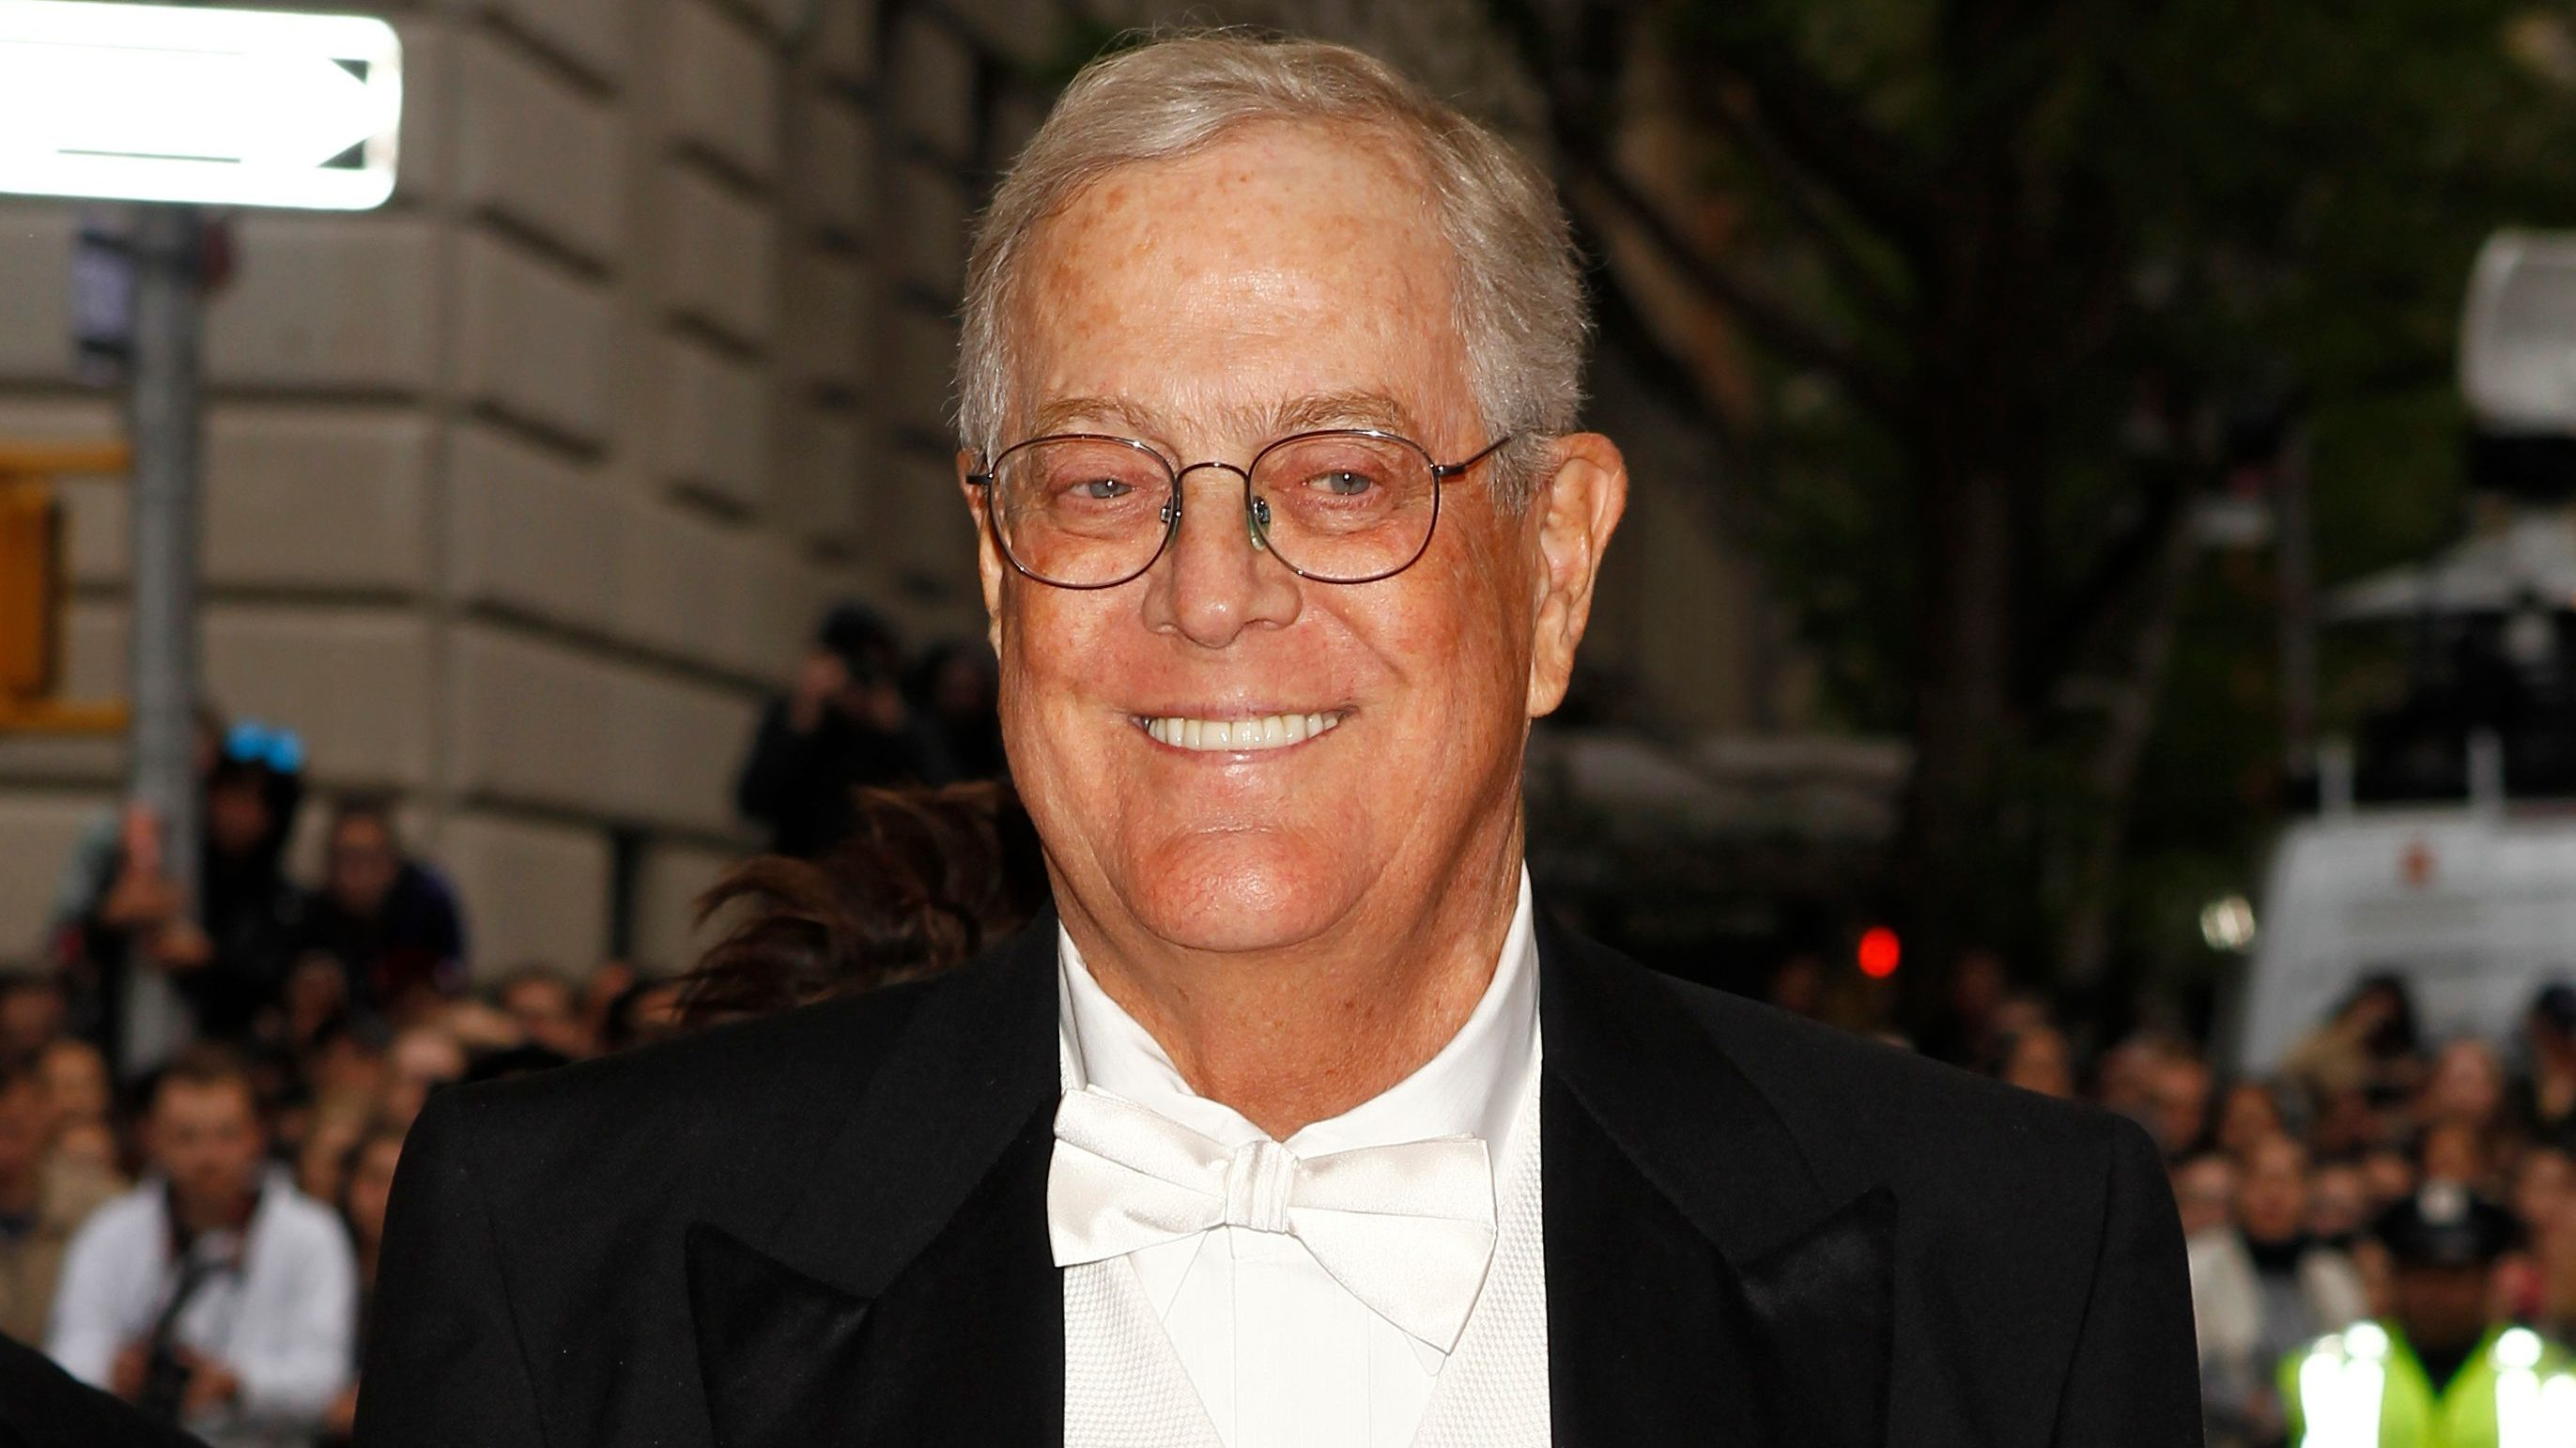 "Businessman David Koch arrives at the Metropolitan Museum of Art Costume Institute Gala Benefit celebrating the opening of ""Charles James: Beyond Fashion"" in Upper Manhattan, New York May 5, 2014. REUTERS/Carlo Allegri (UNITED STATES - Tags: ENTERTAINMENT FASHION BUSINESS HEADSHOT) - TB3EA5607U13C"